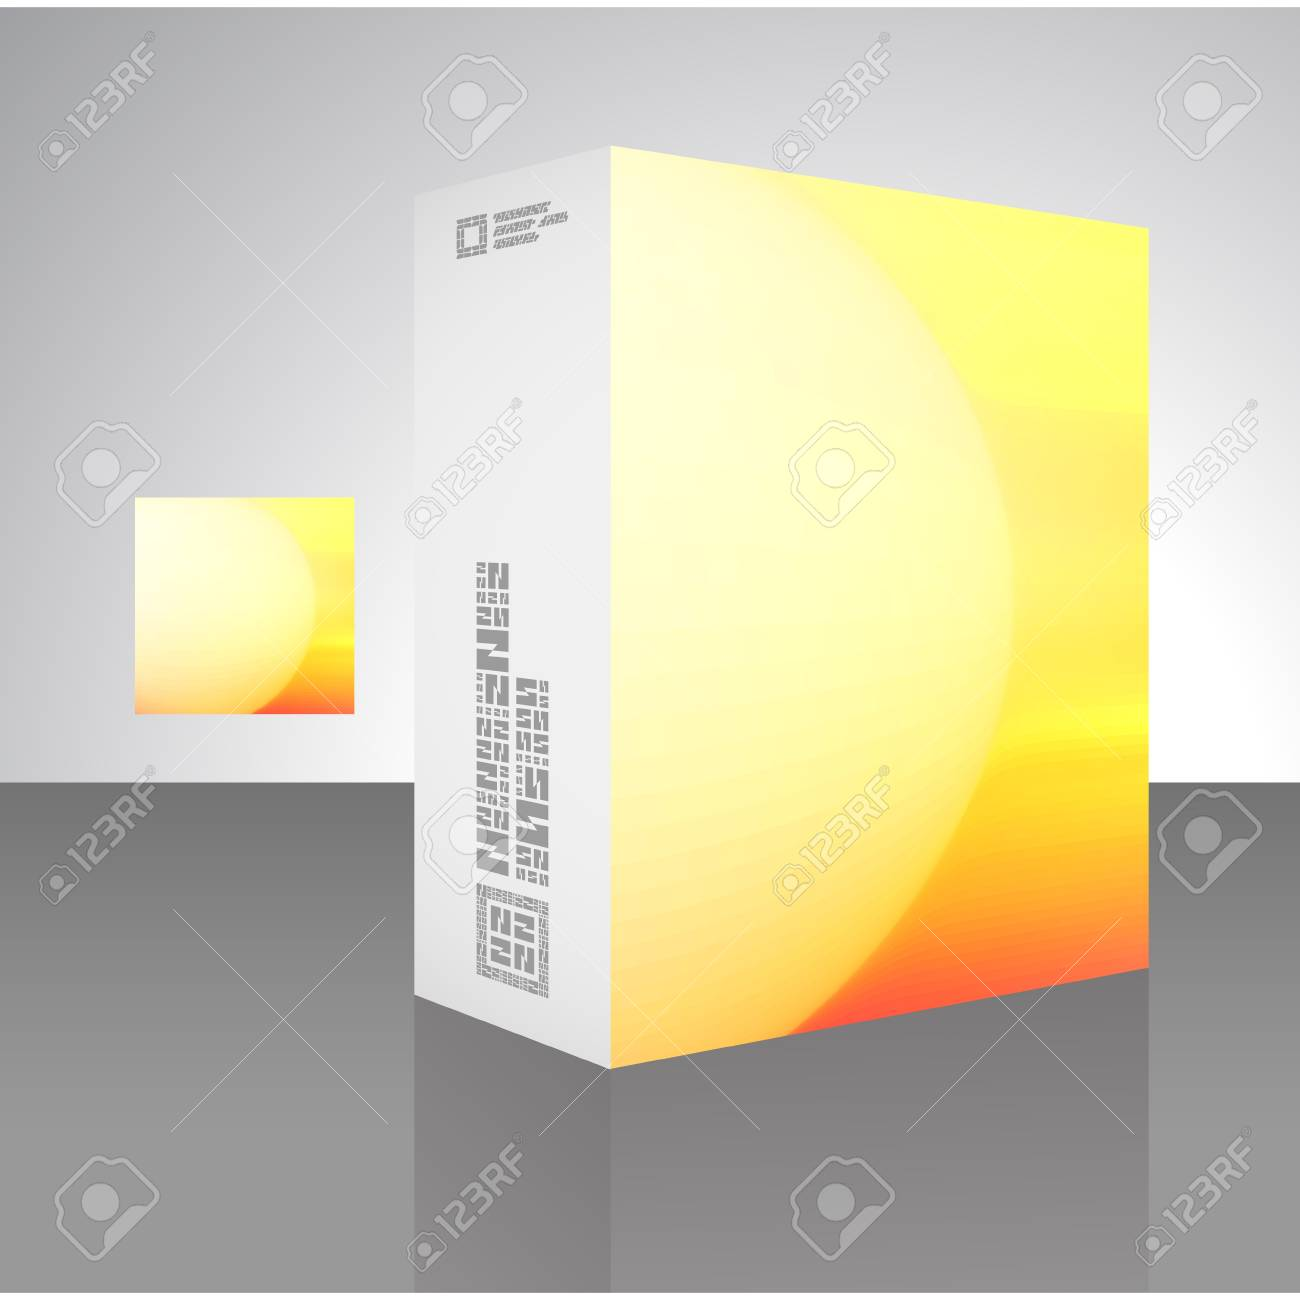 Packaging box Stock Vector - 18352088